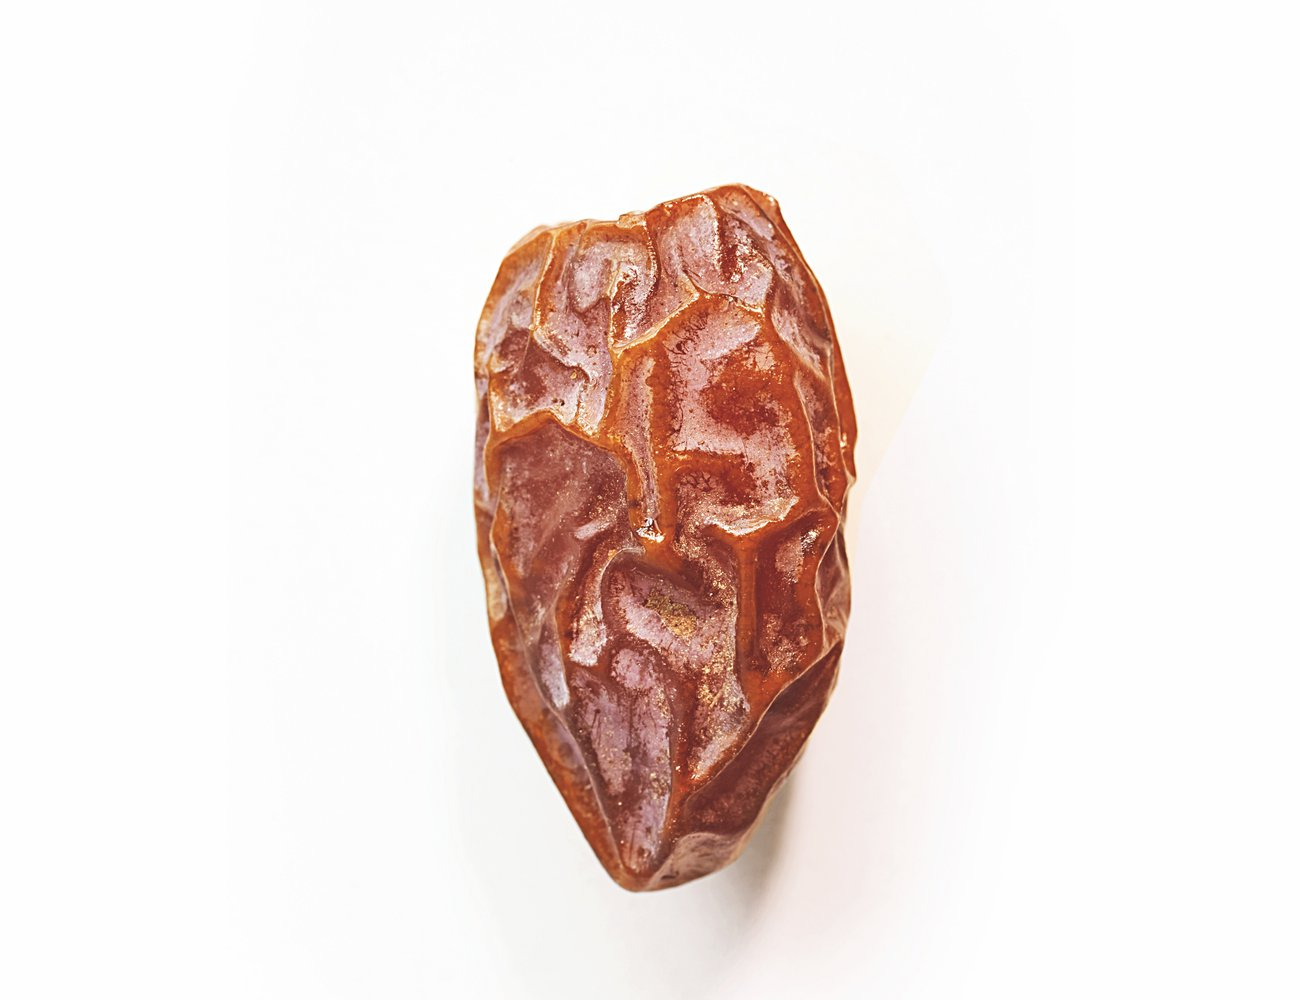 Dates are a highlight of Middle Eastern cuisine